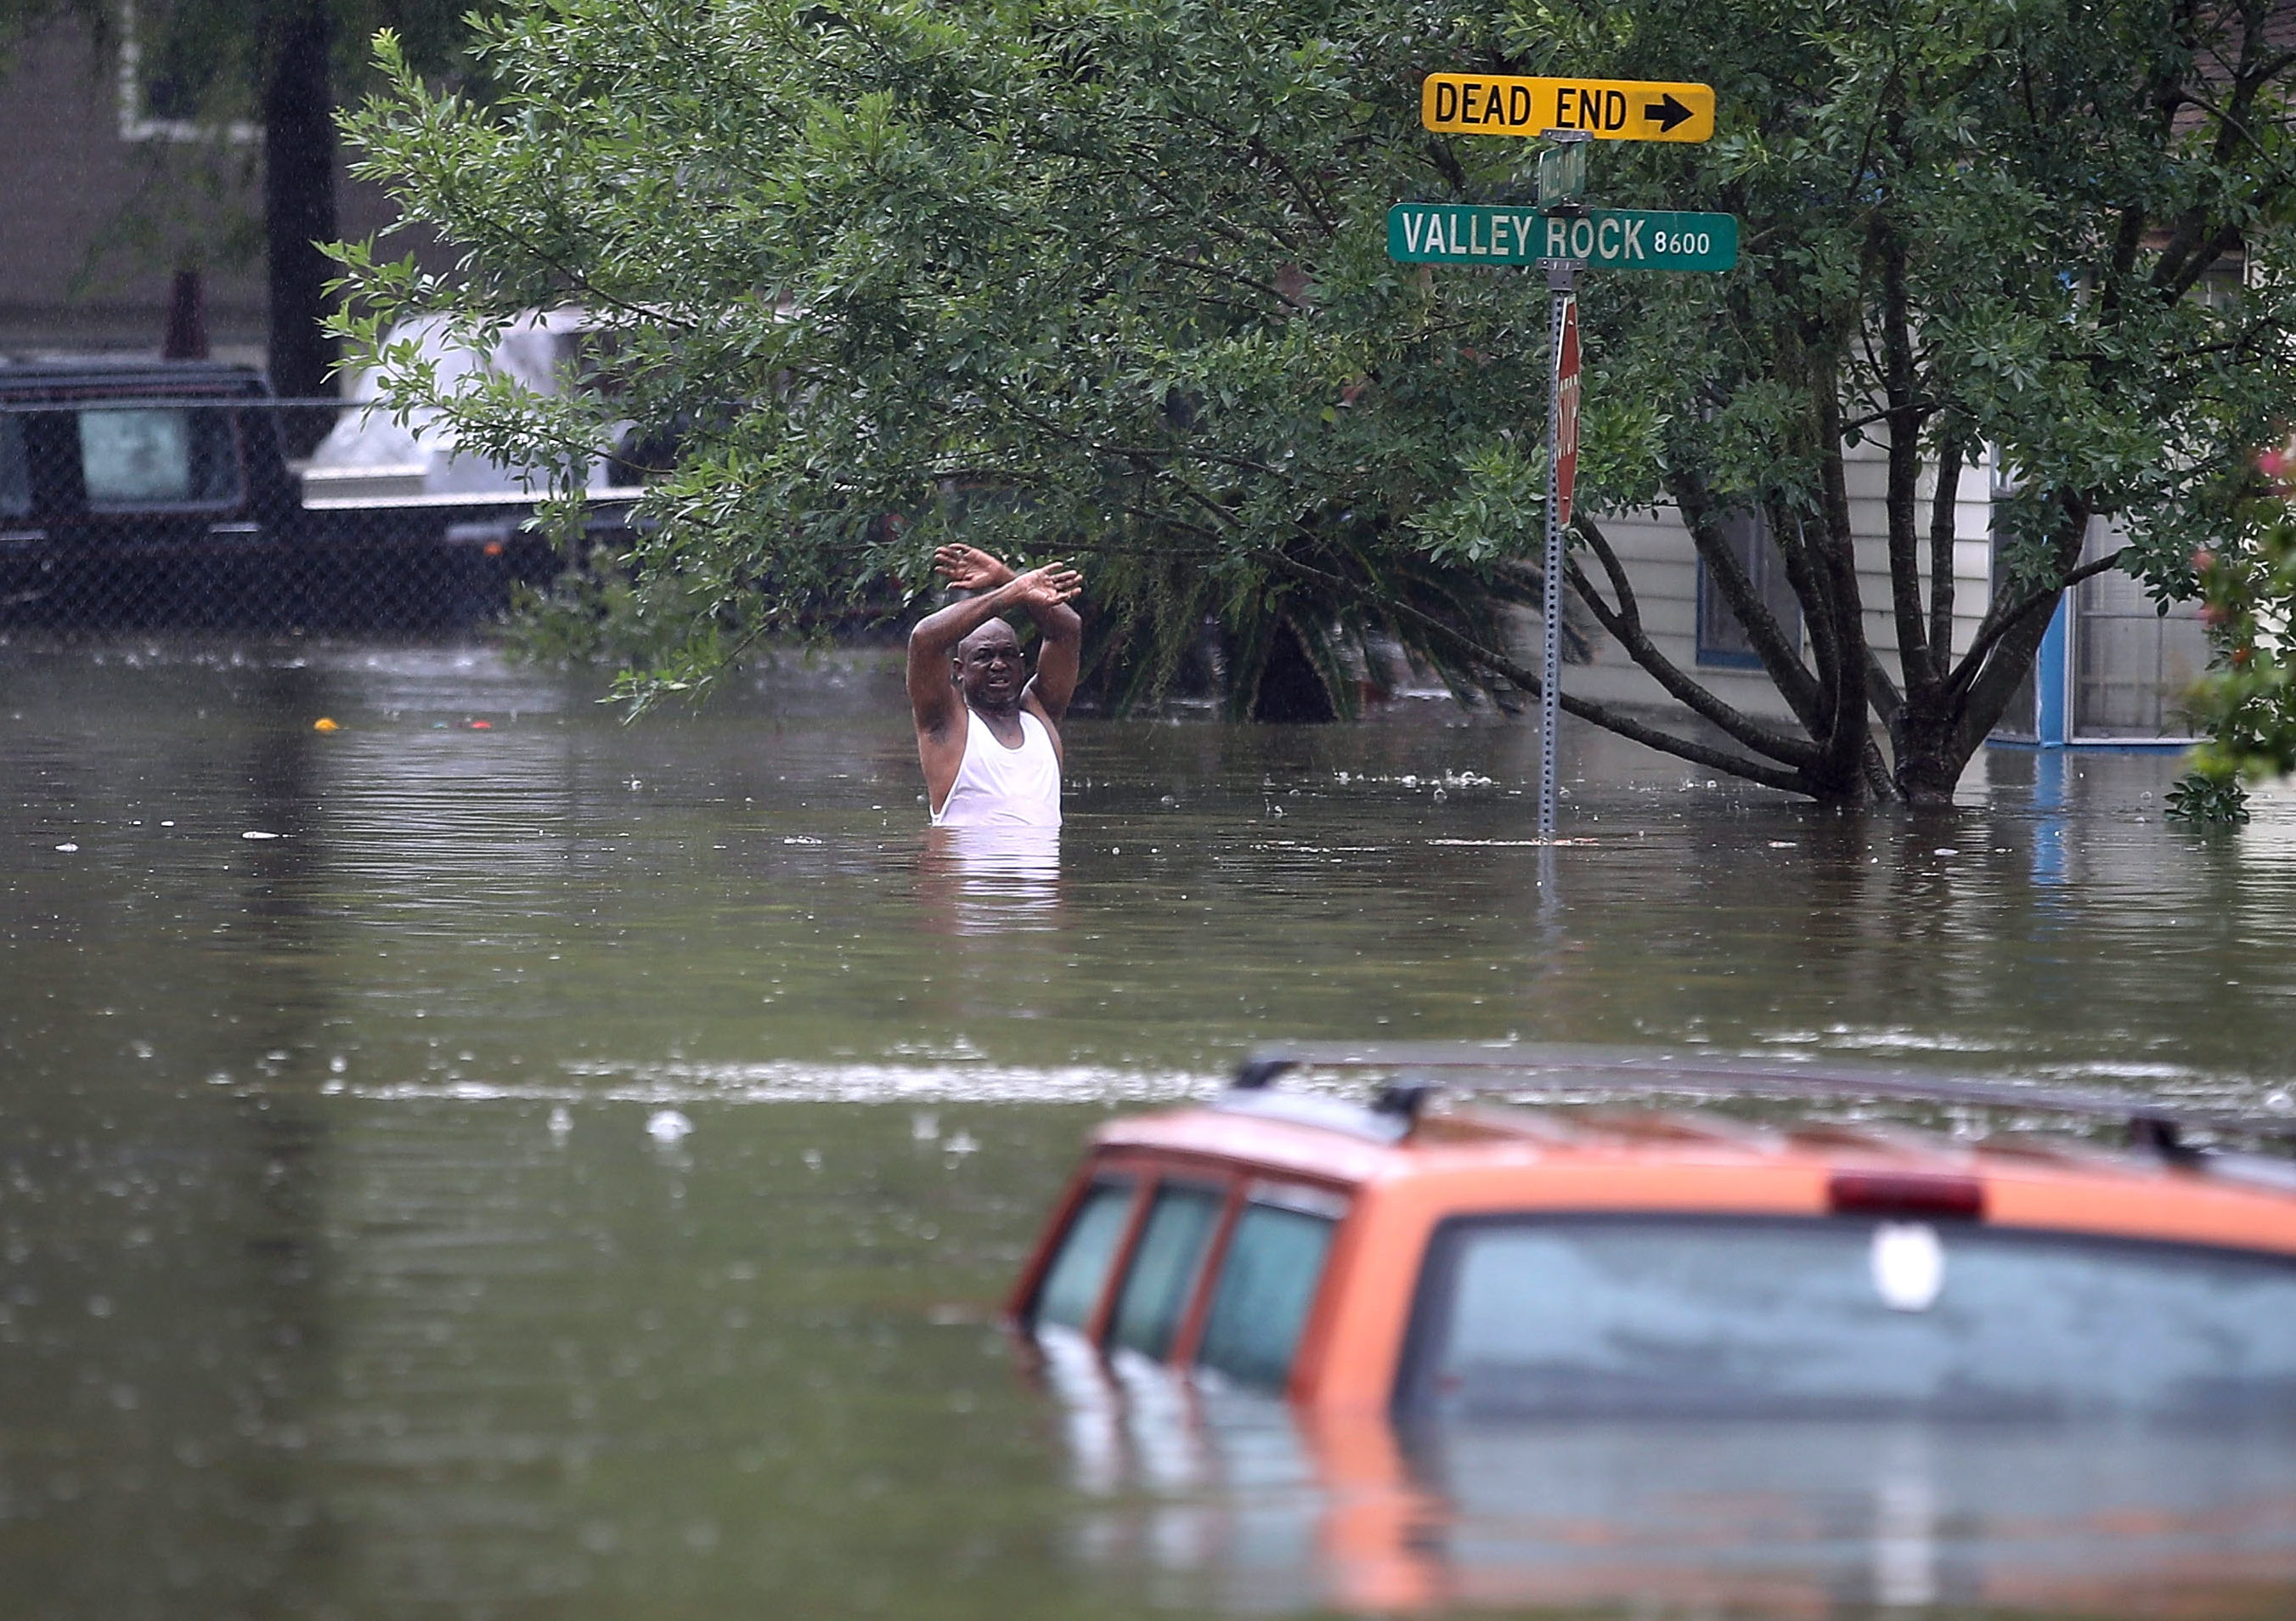 A man waves down a rescue crew as he tries to leave the area after it was inundated with flooding from Hurricane Harvey on August 28, 2017 in Houston, Texas. Harvey, which made landfall north of Corpus Christi late Friday evening, is expected to dump upwards to 40 inches of rain in Texas over the next couple of days.